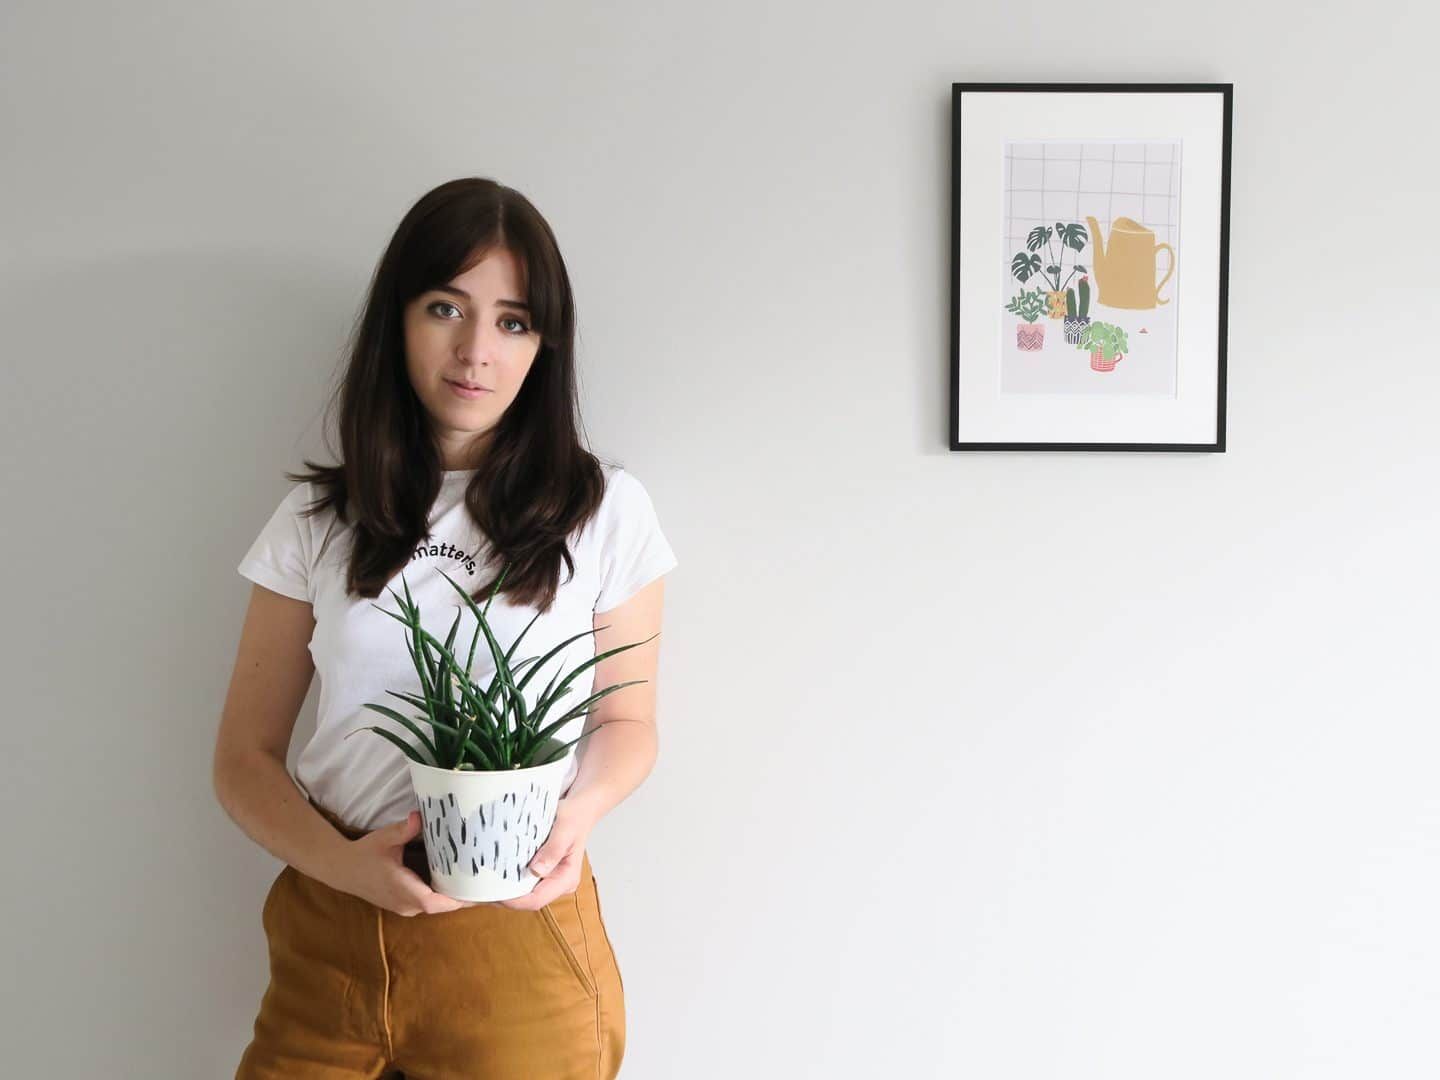 Besma holding a painted plant pot next to a poster